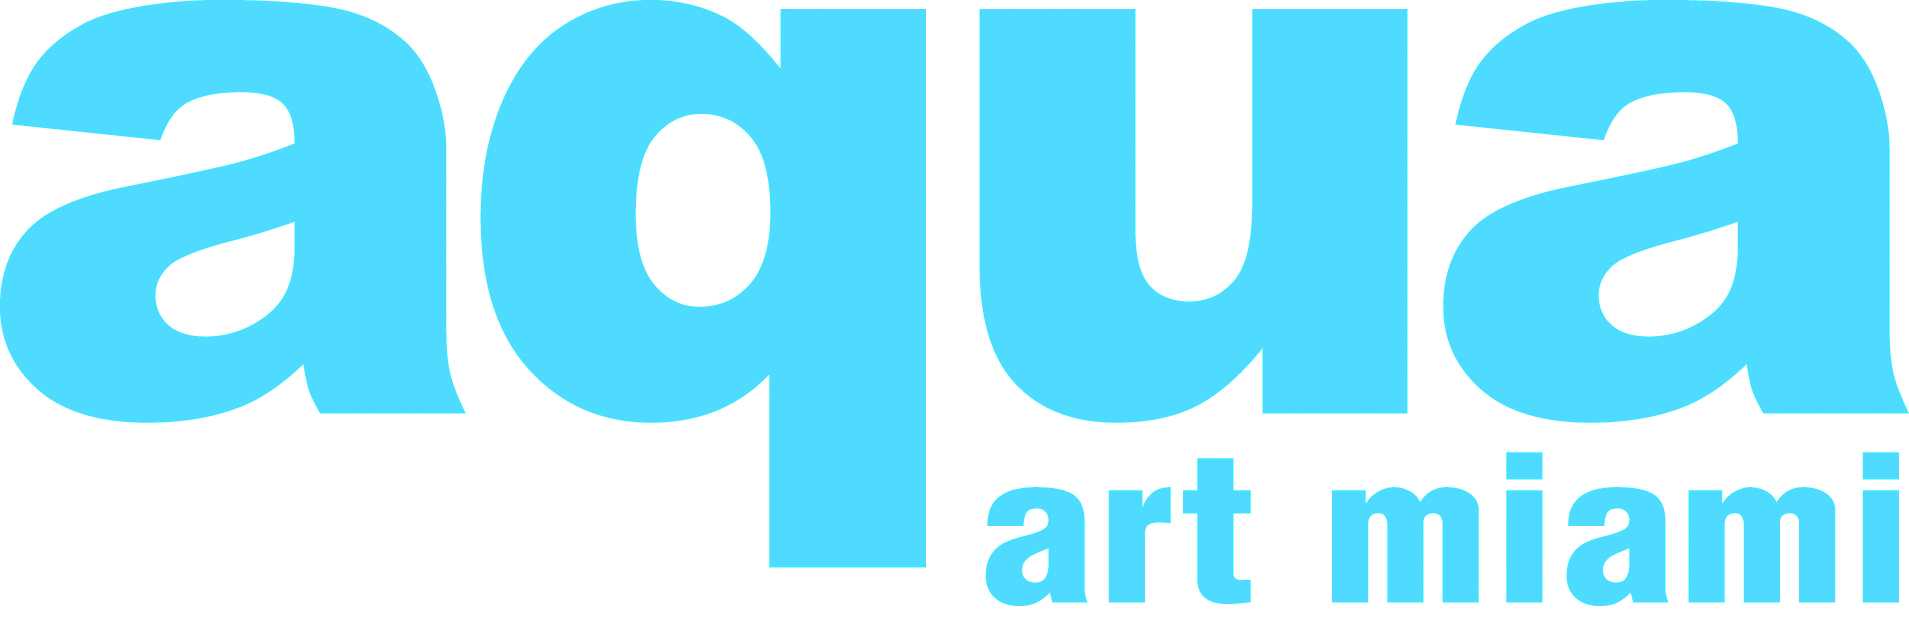 Revision Space chosen to participate in Aqua Art Miami, Earnest is one of four chosen Pittsburgh artists to be represented by Revision Space at the art fair. - August 2015Revision Space is participating in the art fair during the dates of December 2nd-6th, 2015.